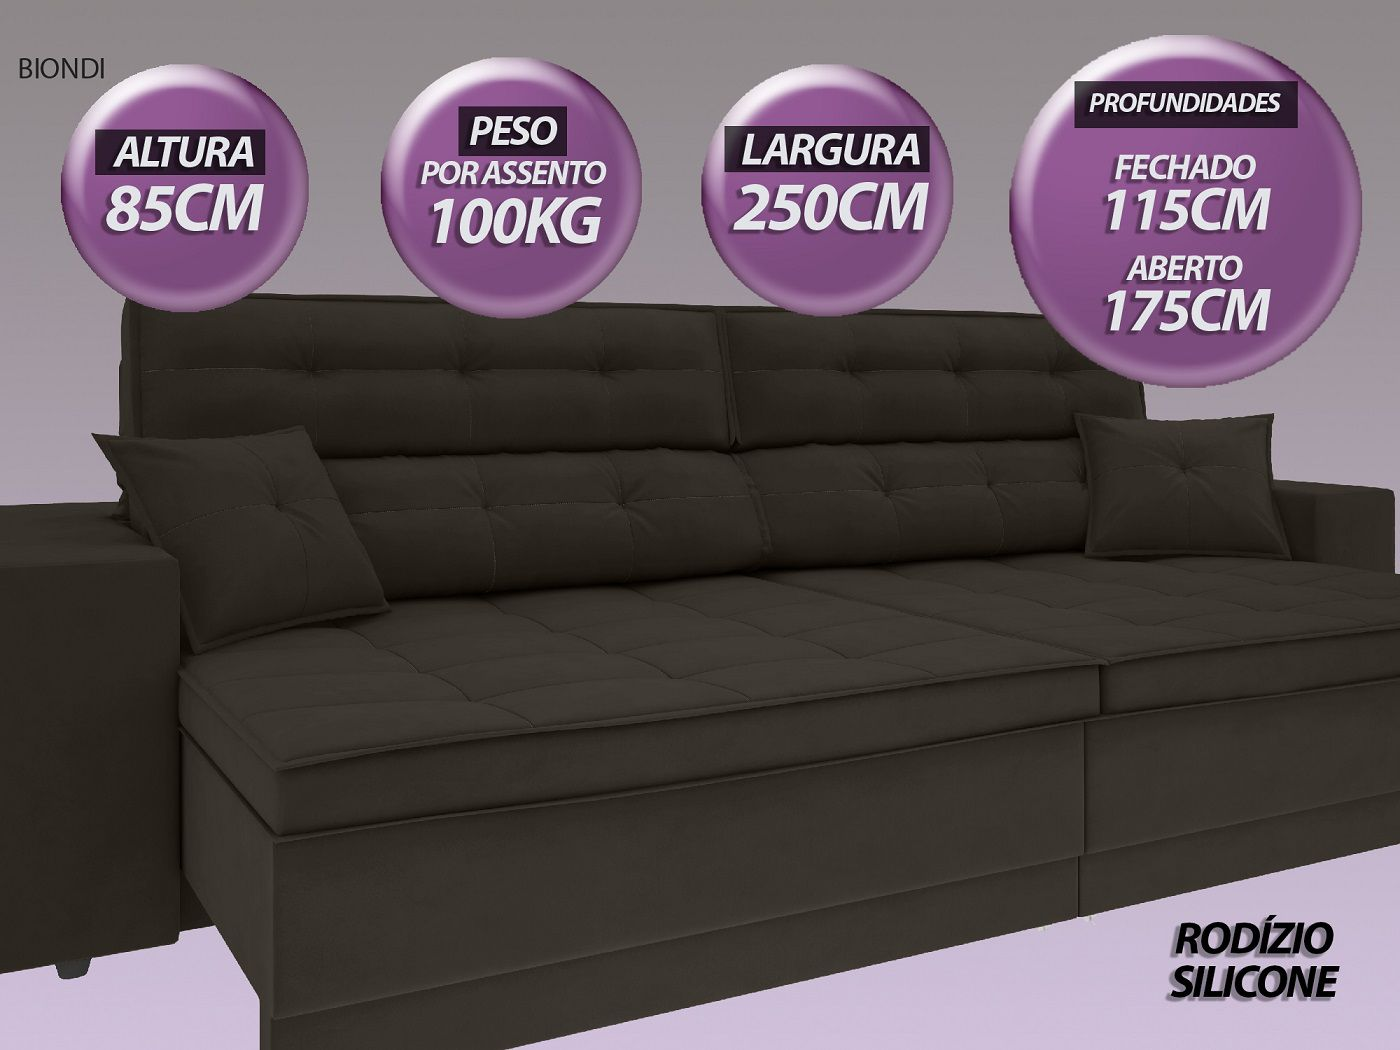 Sofá New Biondi 2,50m Retrátil e Reclinável Velosuede Chocolate  - NETSOFAS